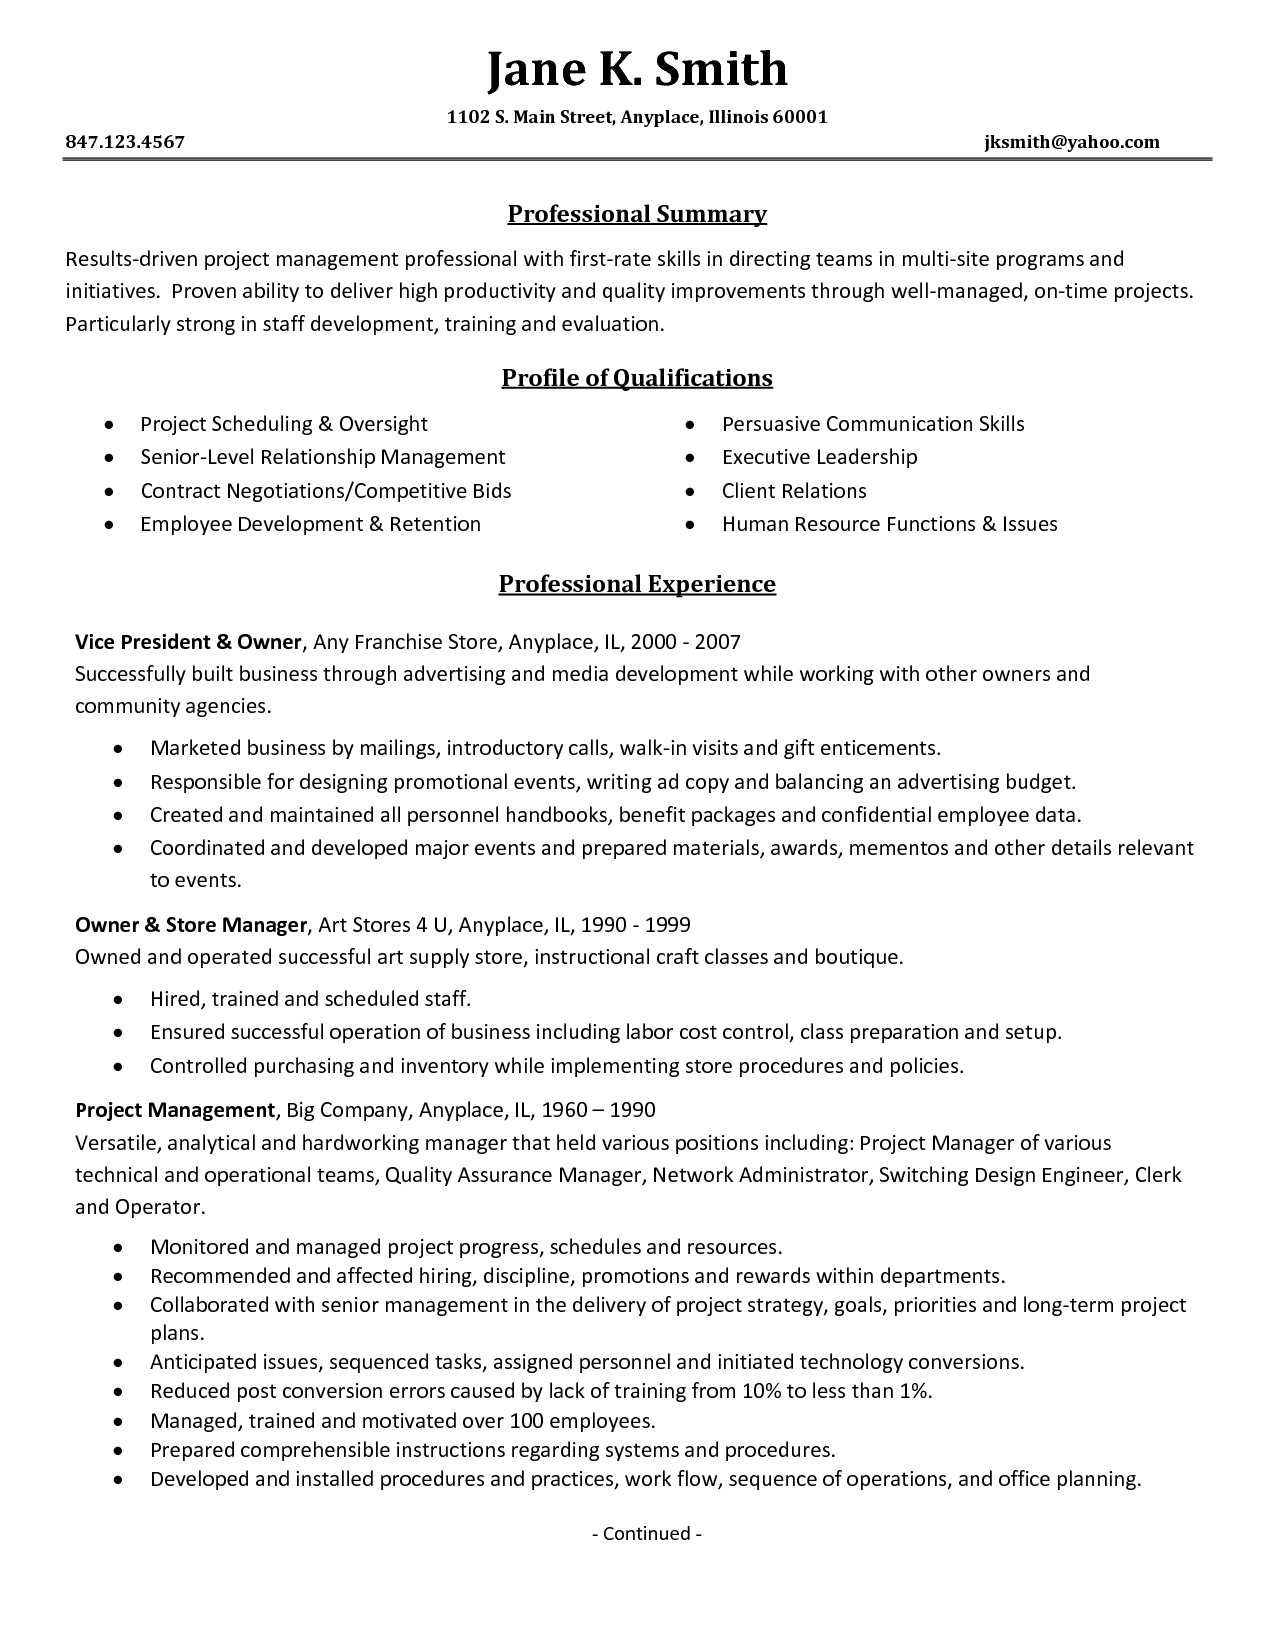 Business Development Manager Resume Leadership Skills Resume Leadership Skills Resume Template…  Job